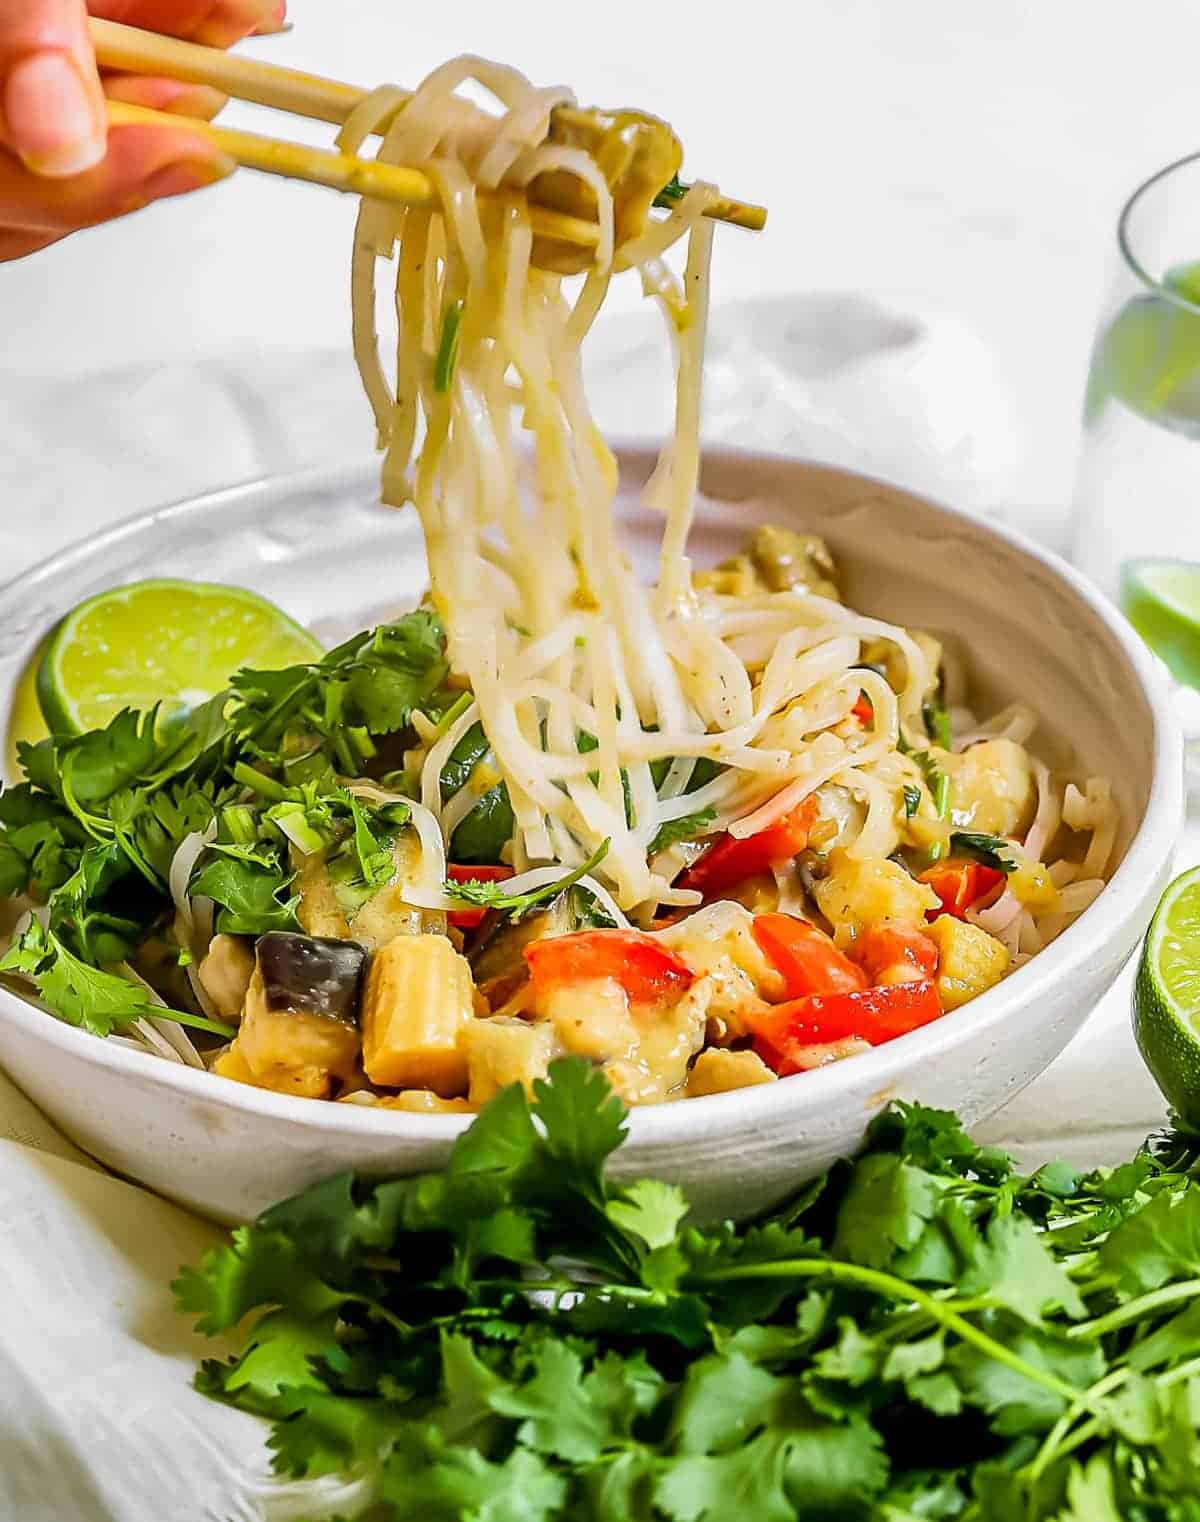 Chopsticks picking up noodles form the thai curry chicken bowl